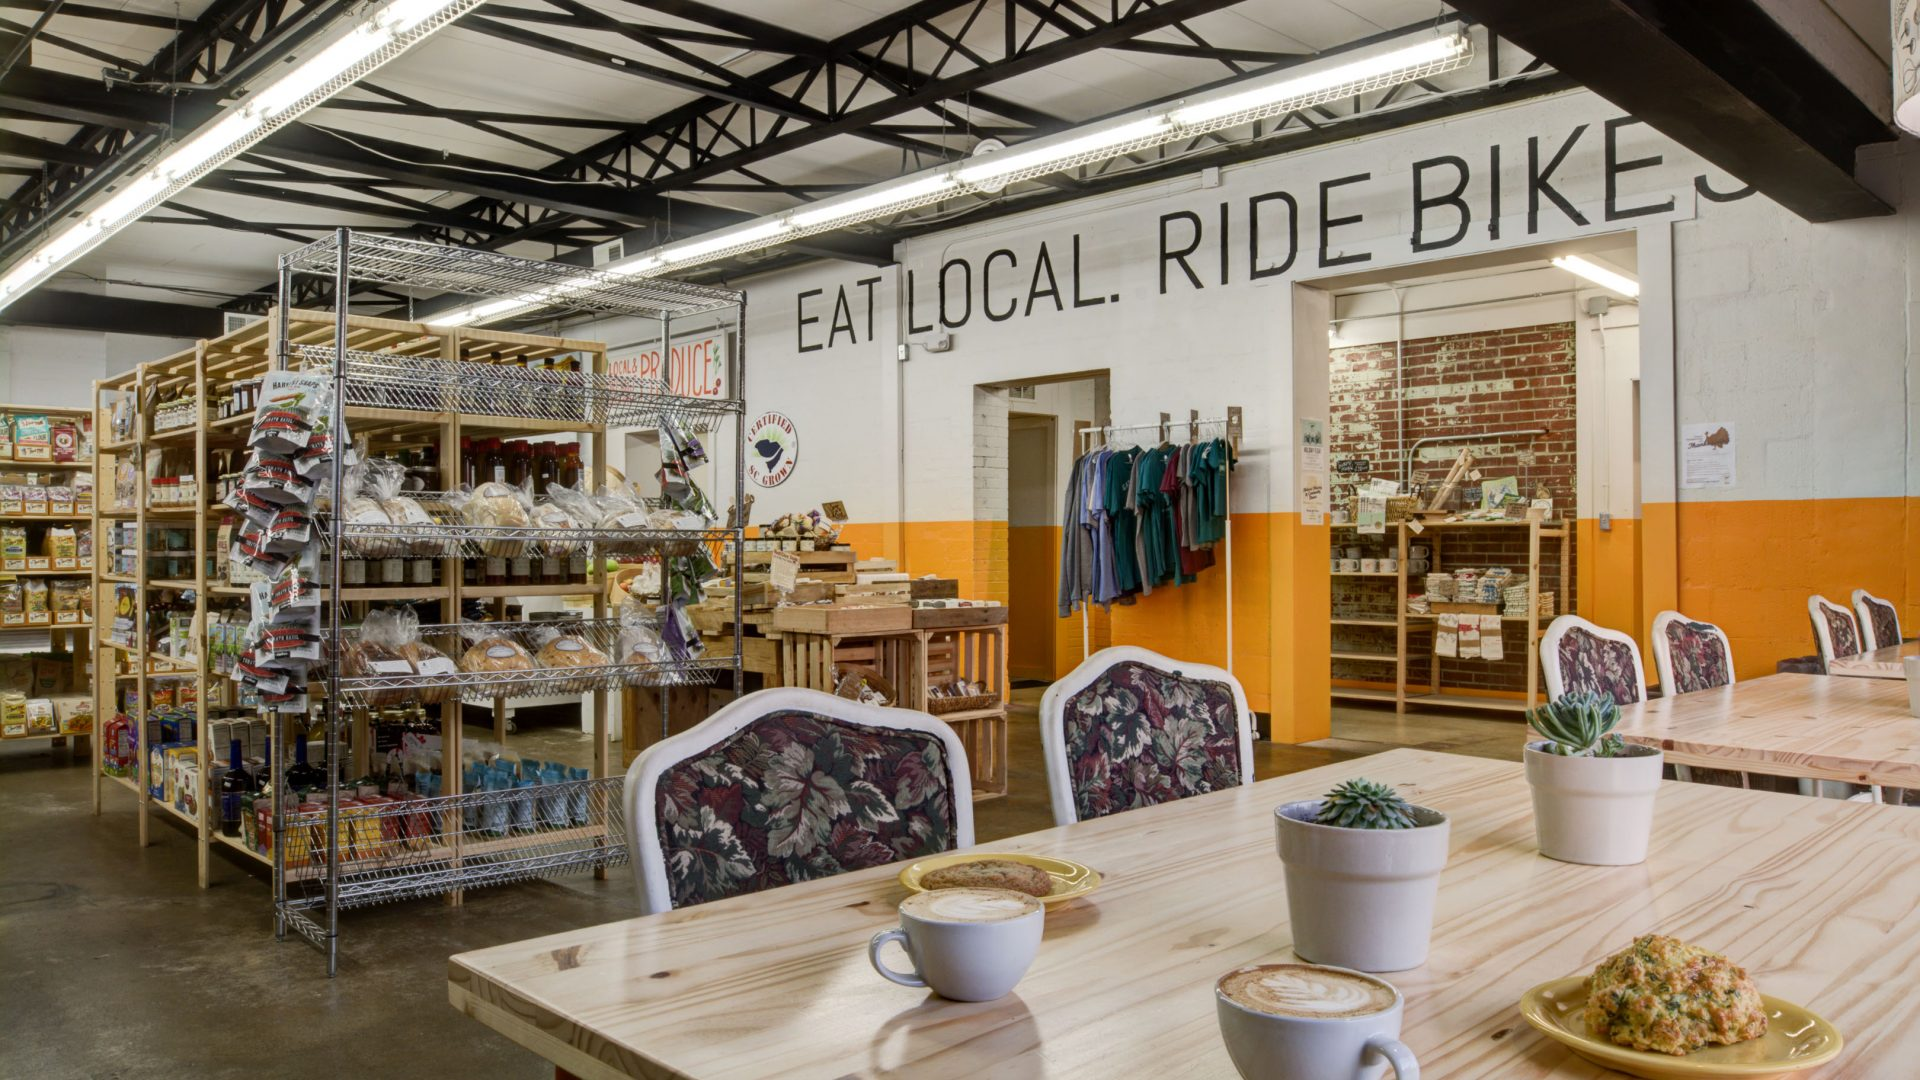 Swamp Rabbit Cafe & Grocery - Interior Photo